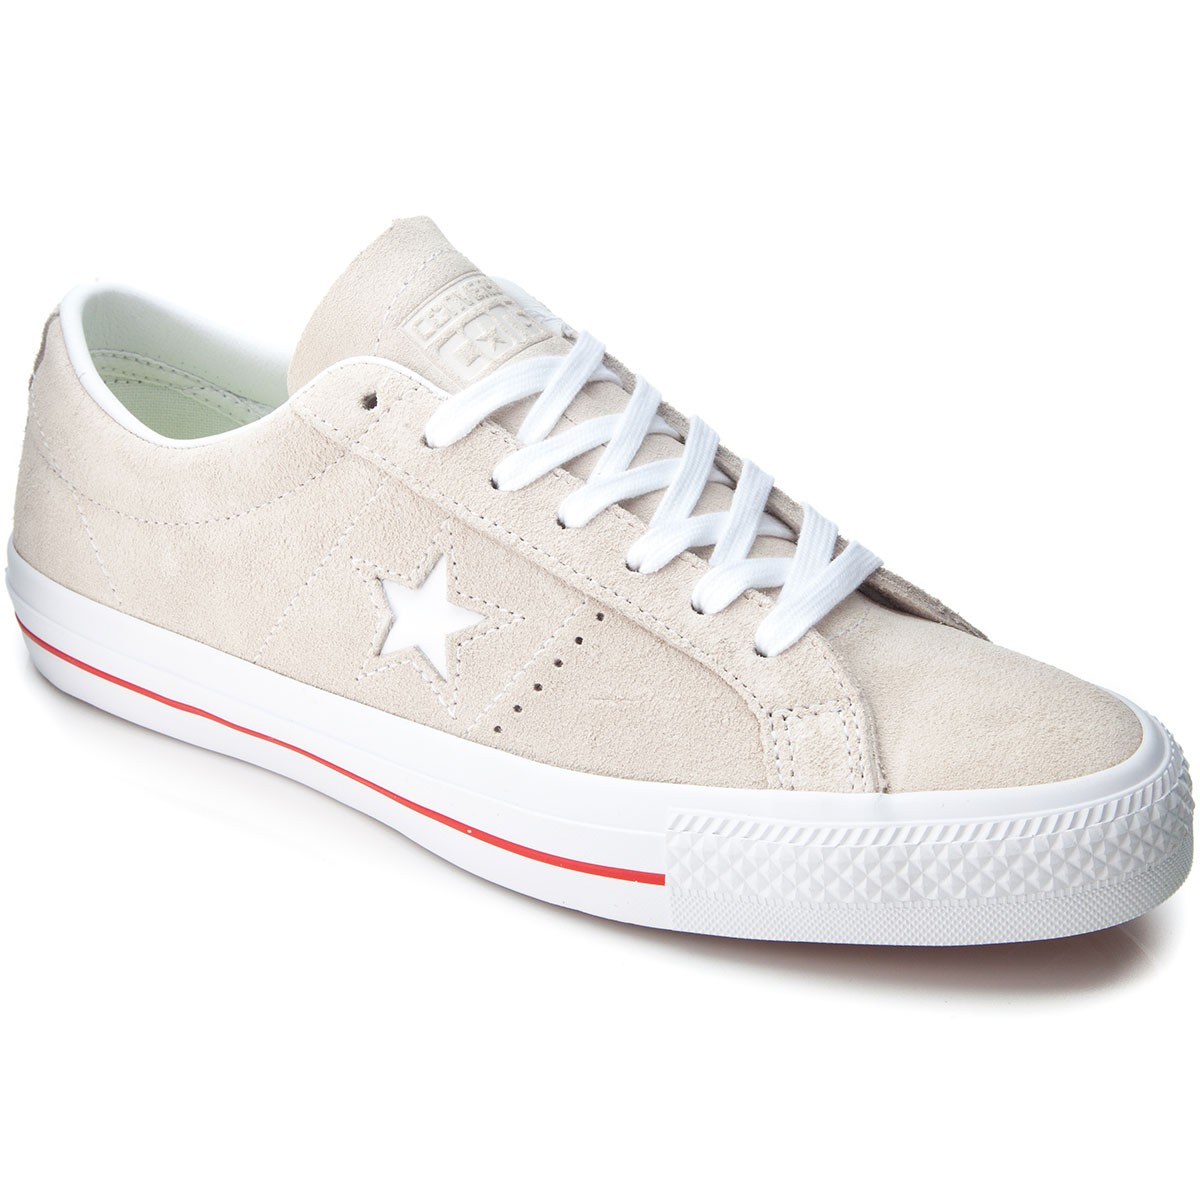 Converse One Star Skate Shoes f4c8a1c00